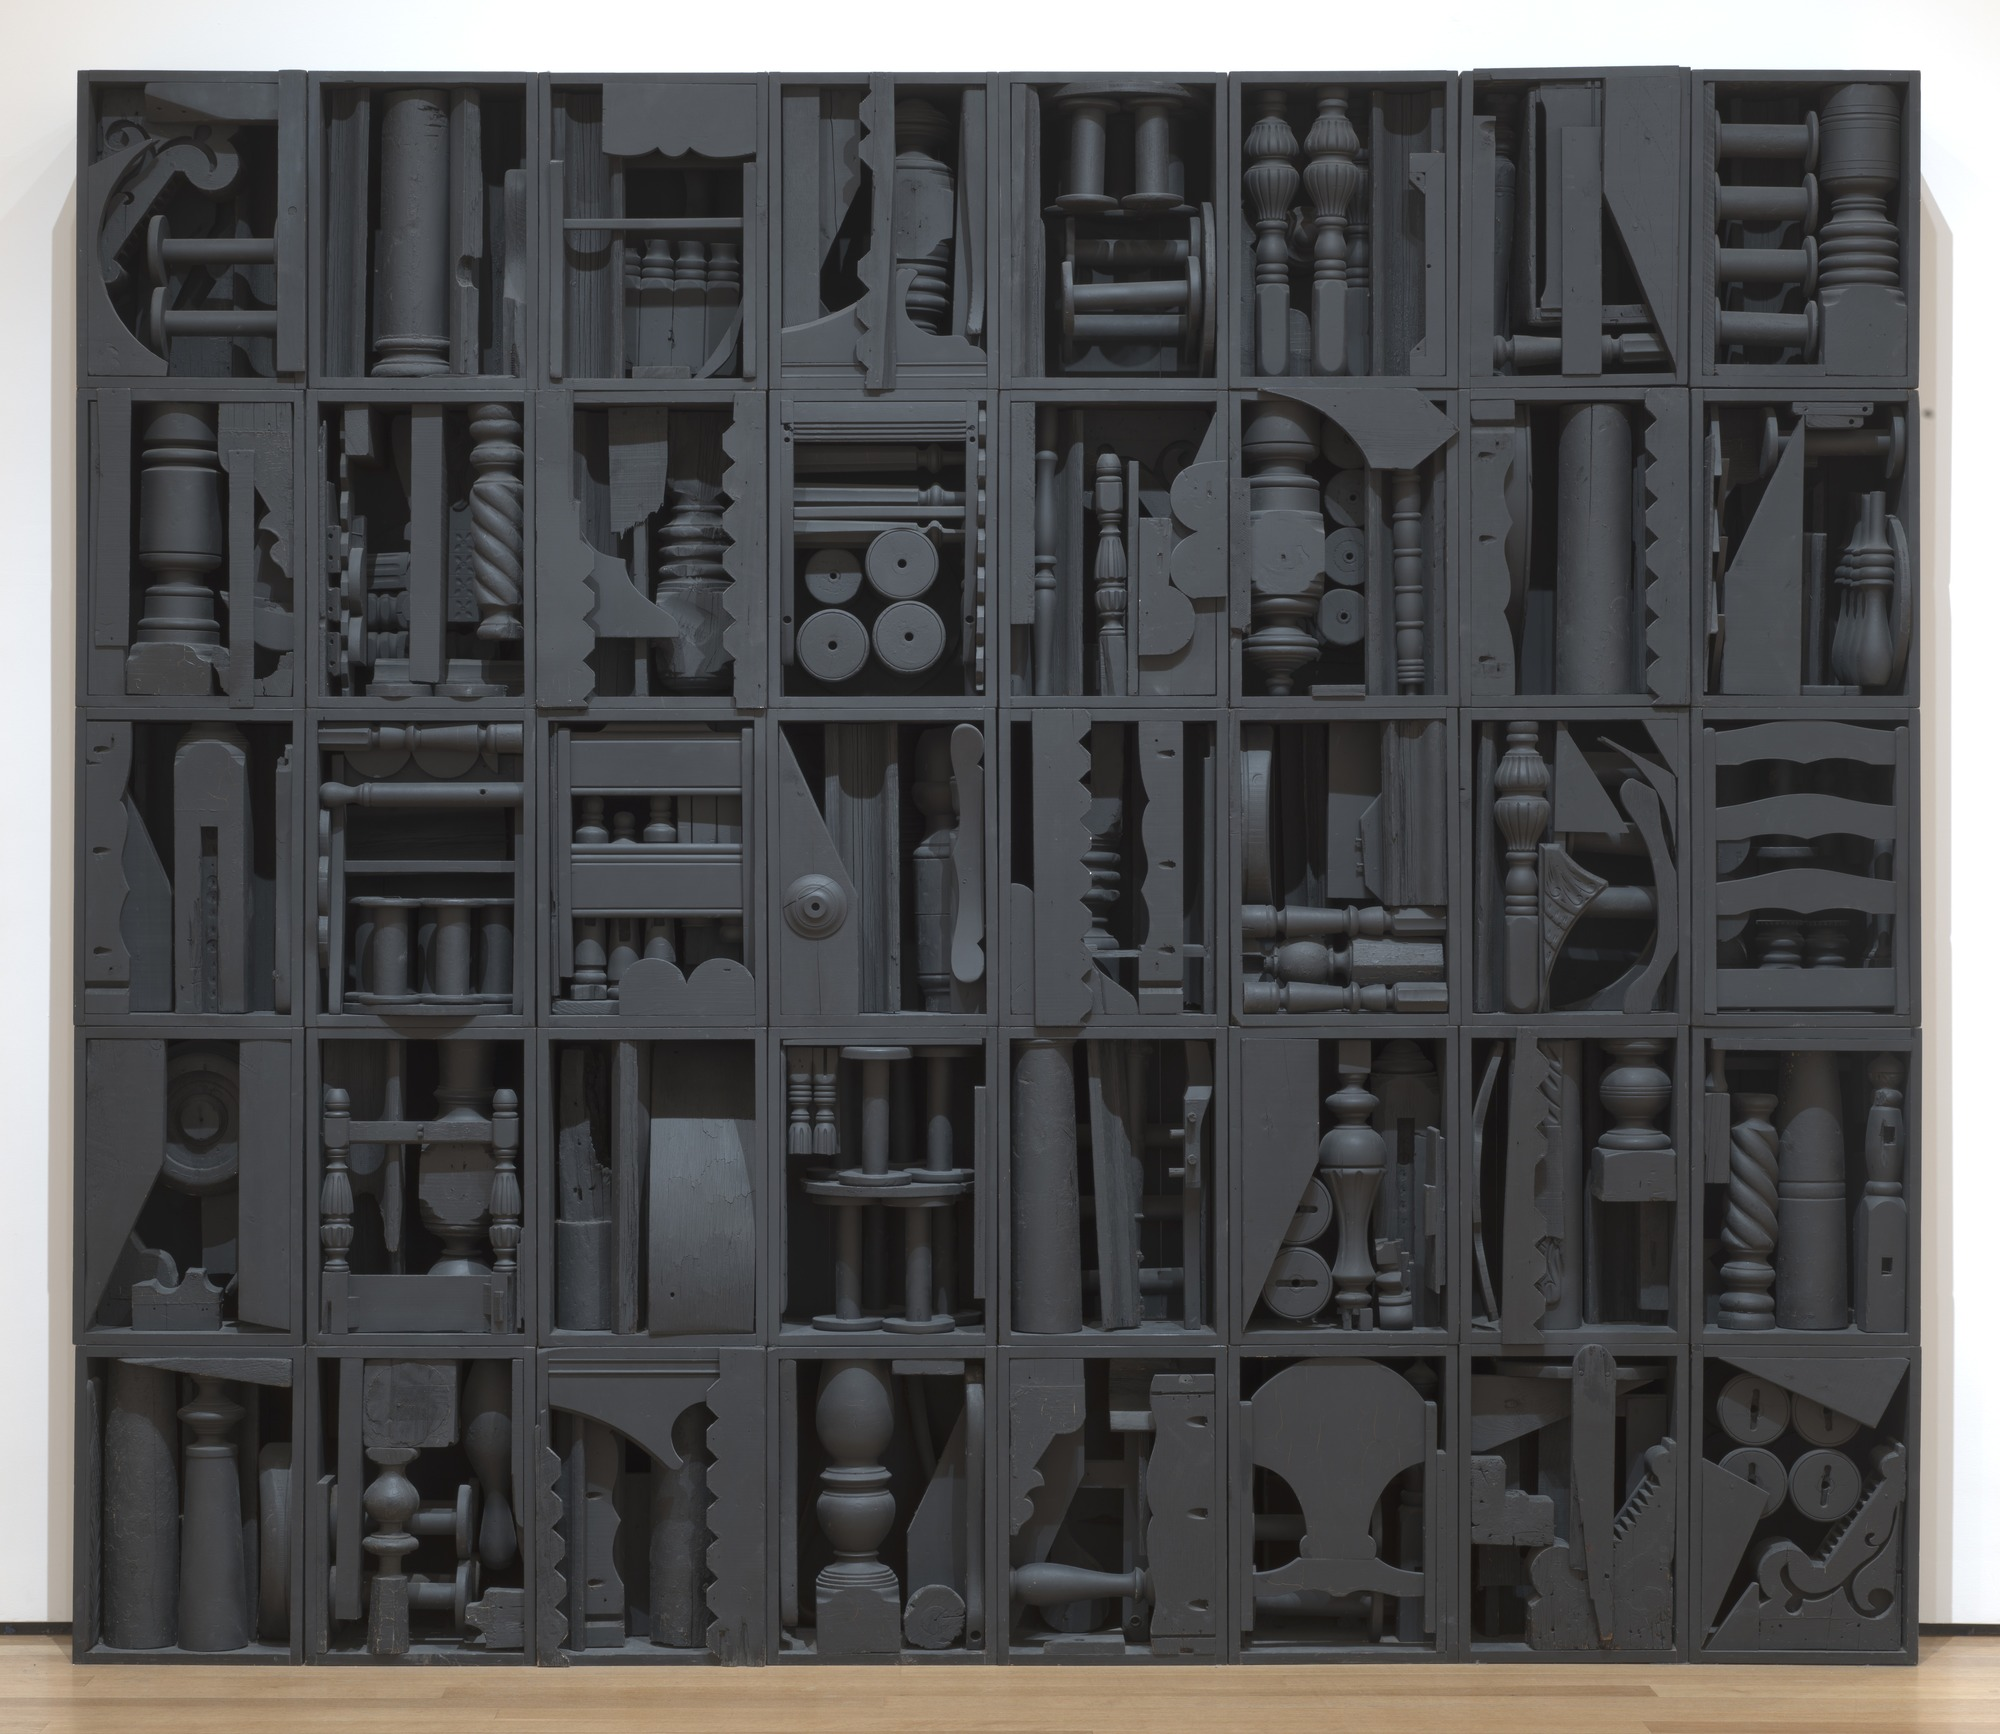 louise nevelson.jpg